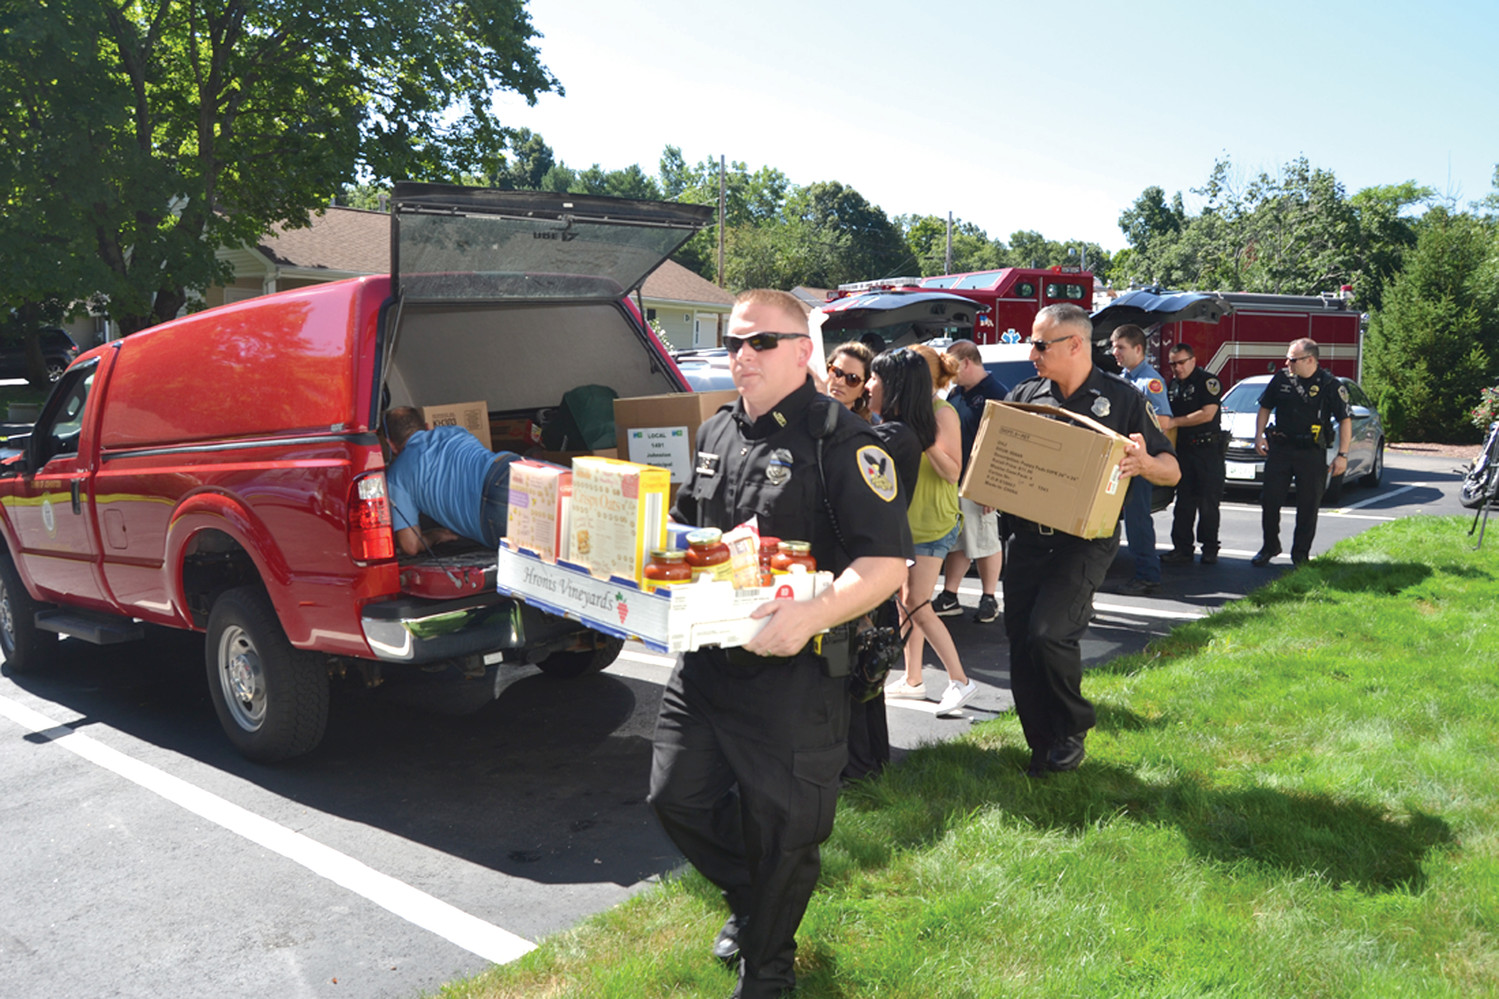 BRINGING IT IN: In August, members of the Johnston Police Department, Johnston Fire Department, and town workers delivered hundreds of pounds of food that they collected for veterans in need at Johnston's own Operation Stand Down Rhode Island after their pantry shelves were nearly empty. (Sun Rise photo by Tim Forsberg)